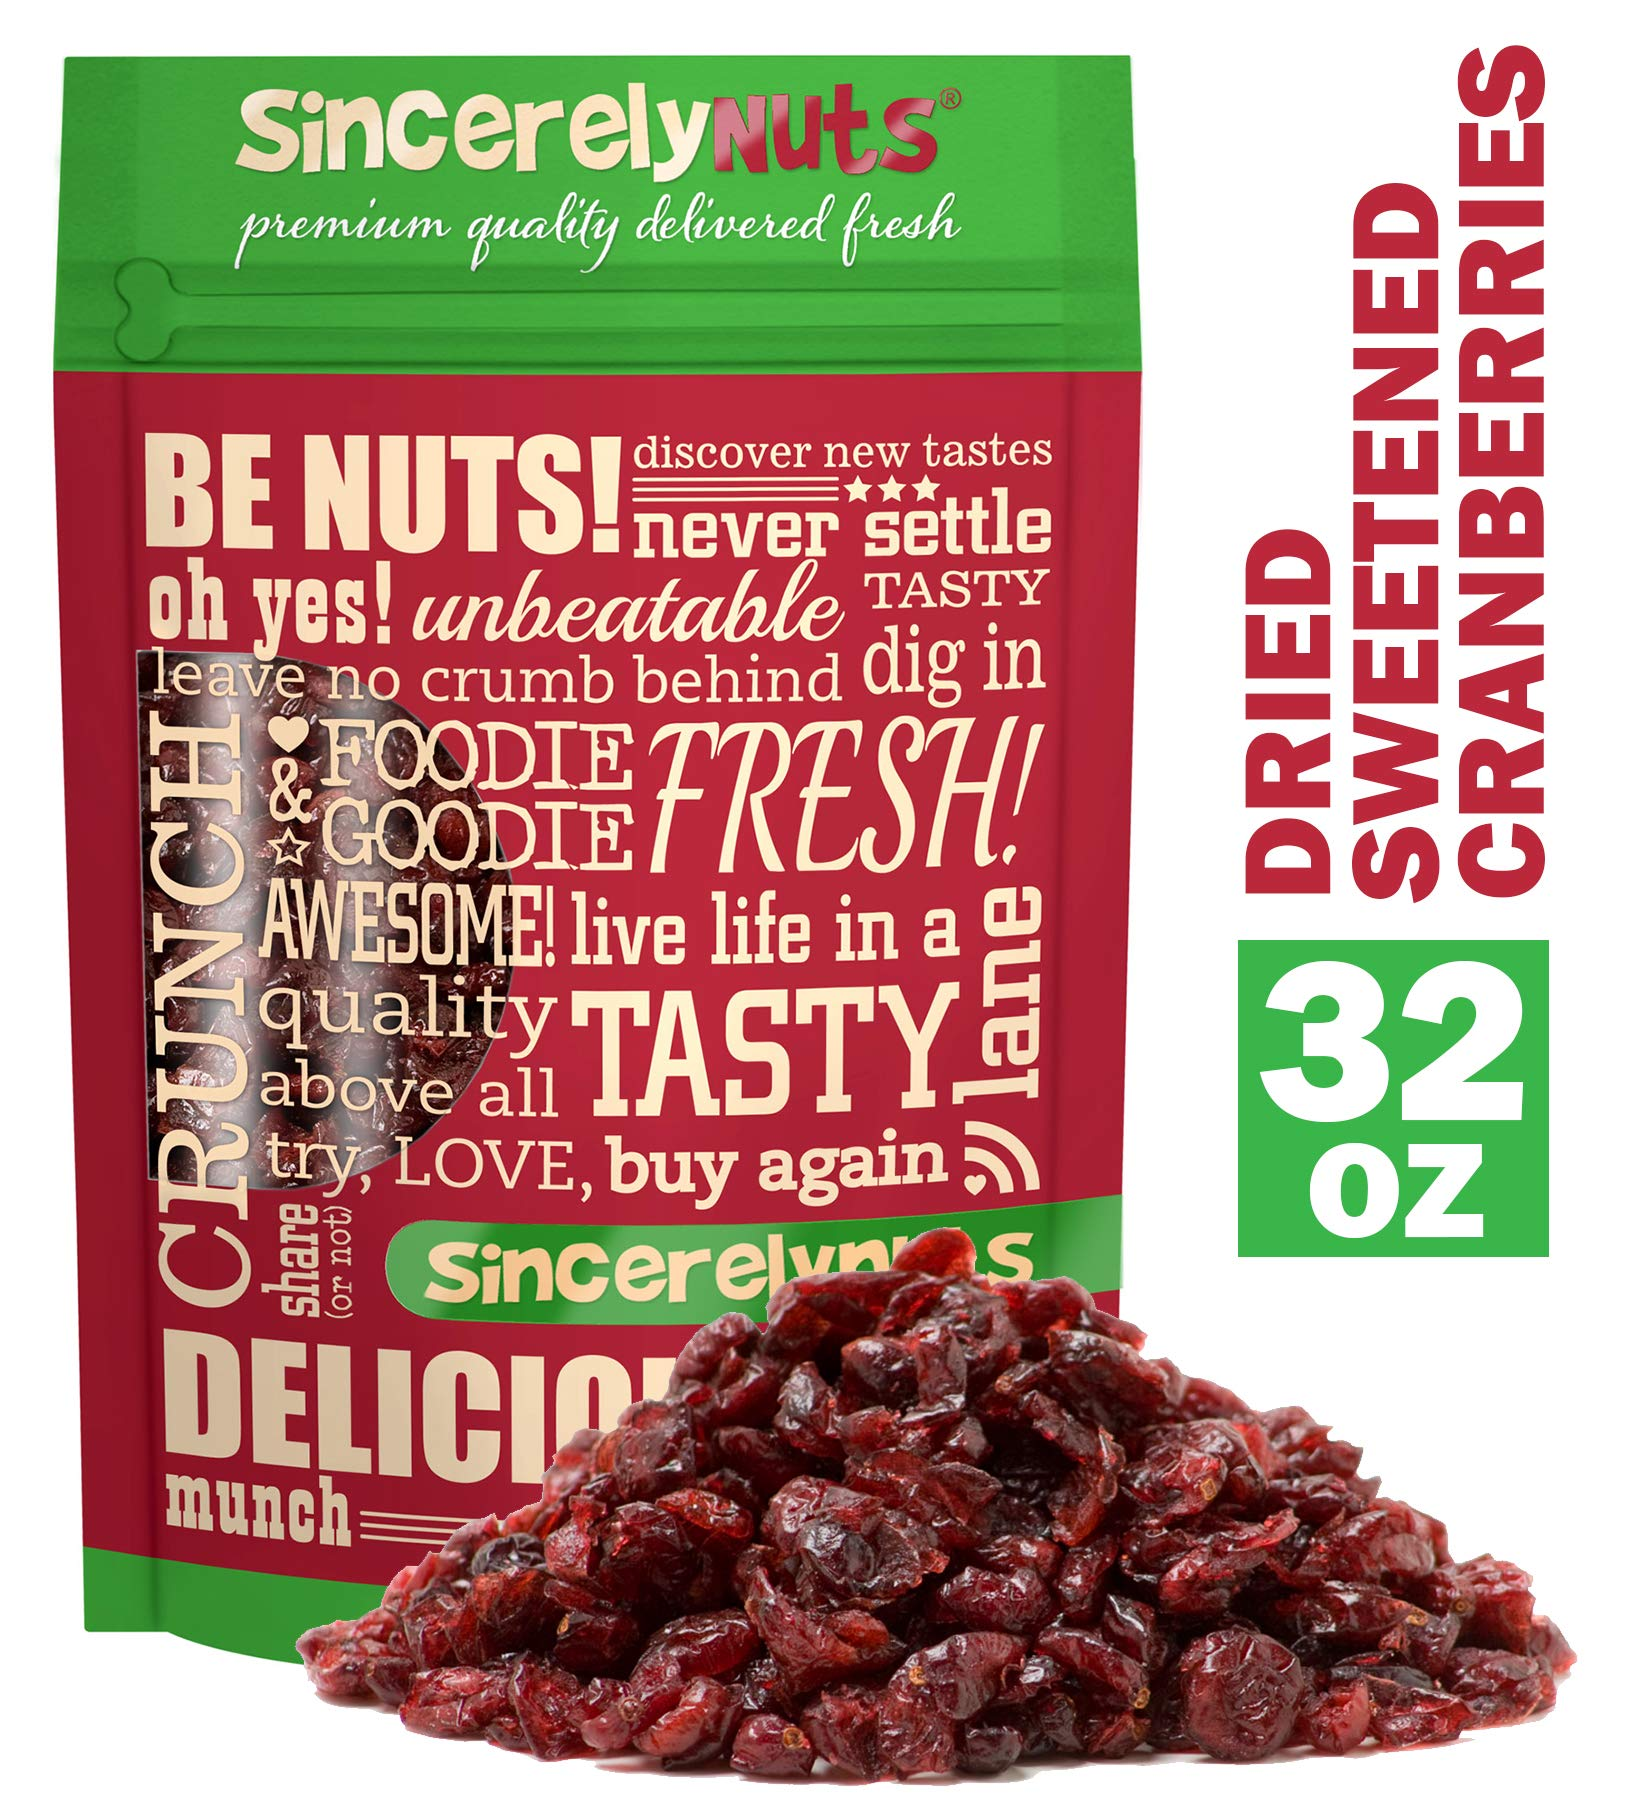 Sincerely Nuts Dried Sweetened Cranberries (2 LB) Vegan, Kosher & Gluten-Free Food-Dried Fruit Snack-Healthy Addition to Your Favorite Meals-Nutrient Rich Alternative Treat for the Whole Family by Sincerely Nuts (Image #1)